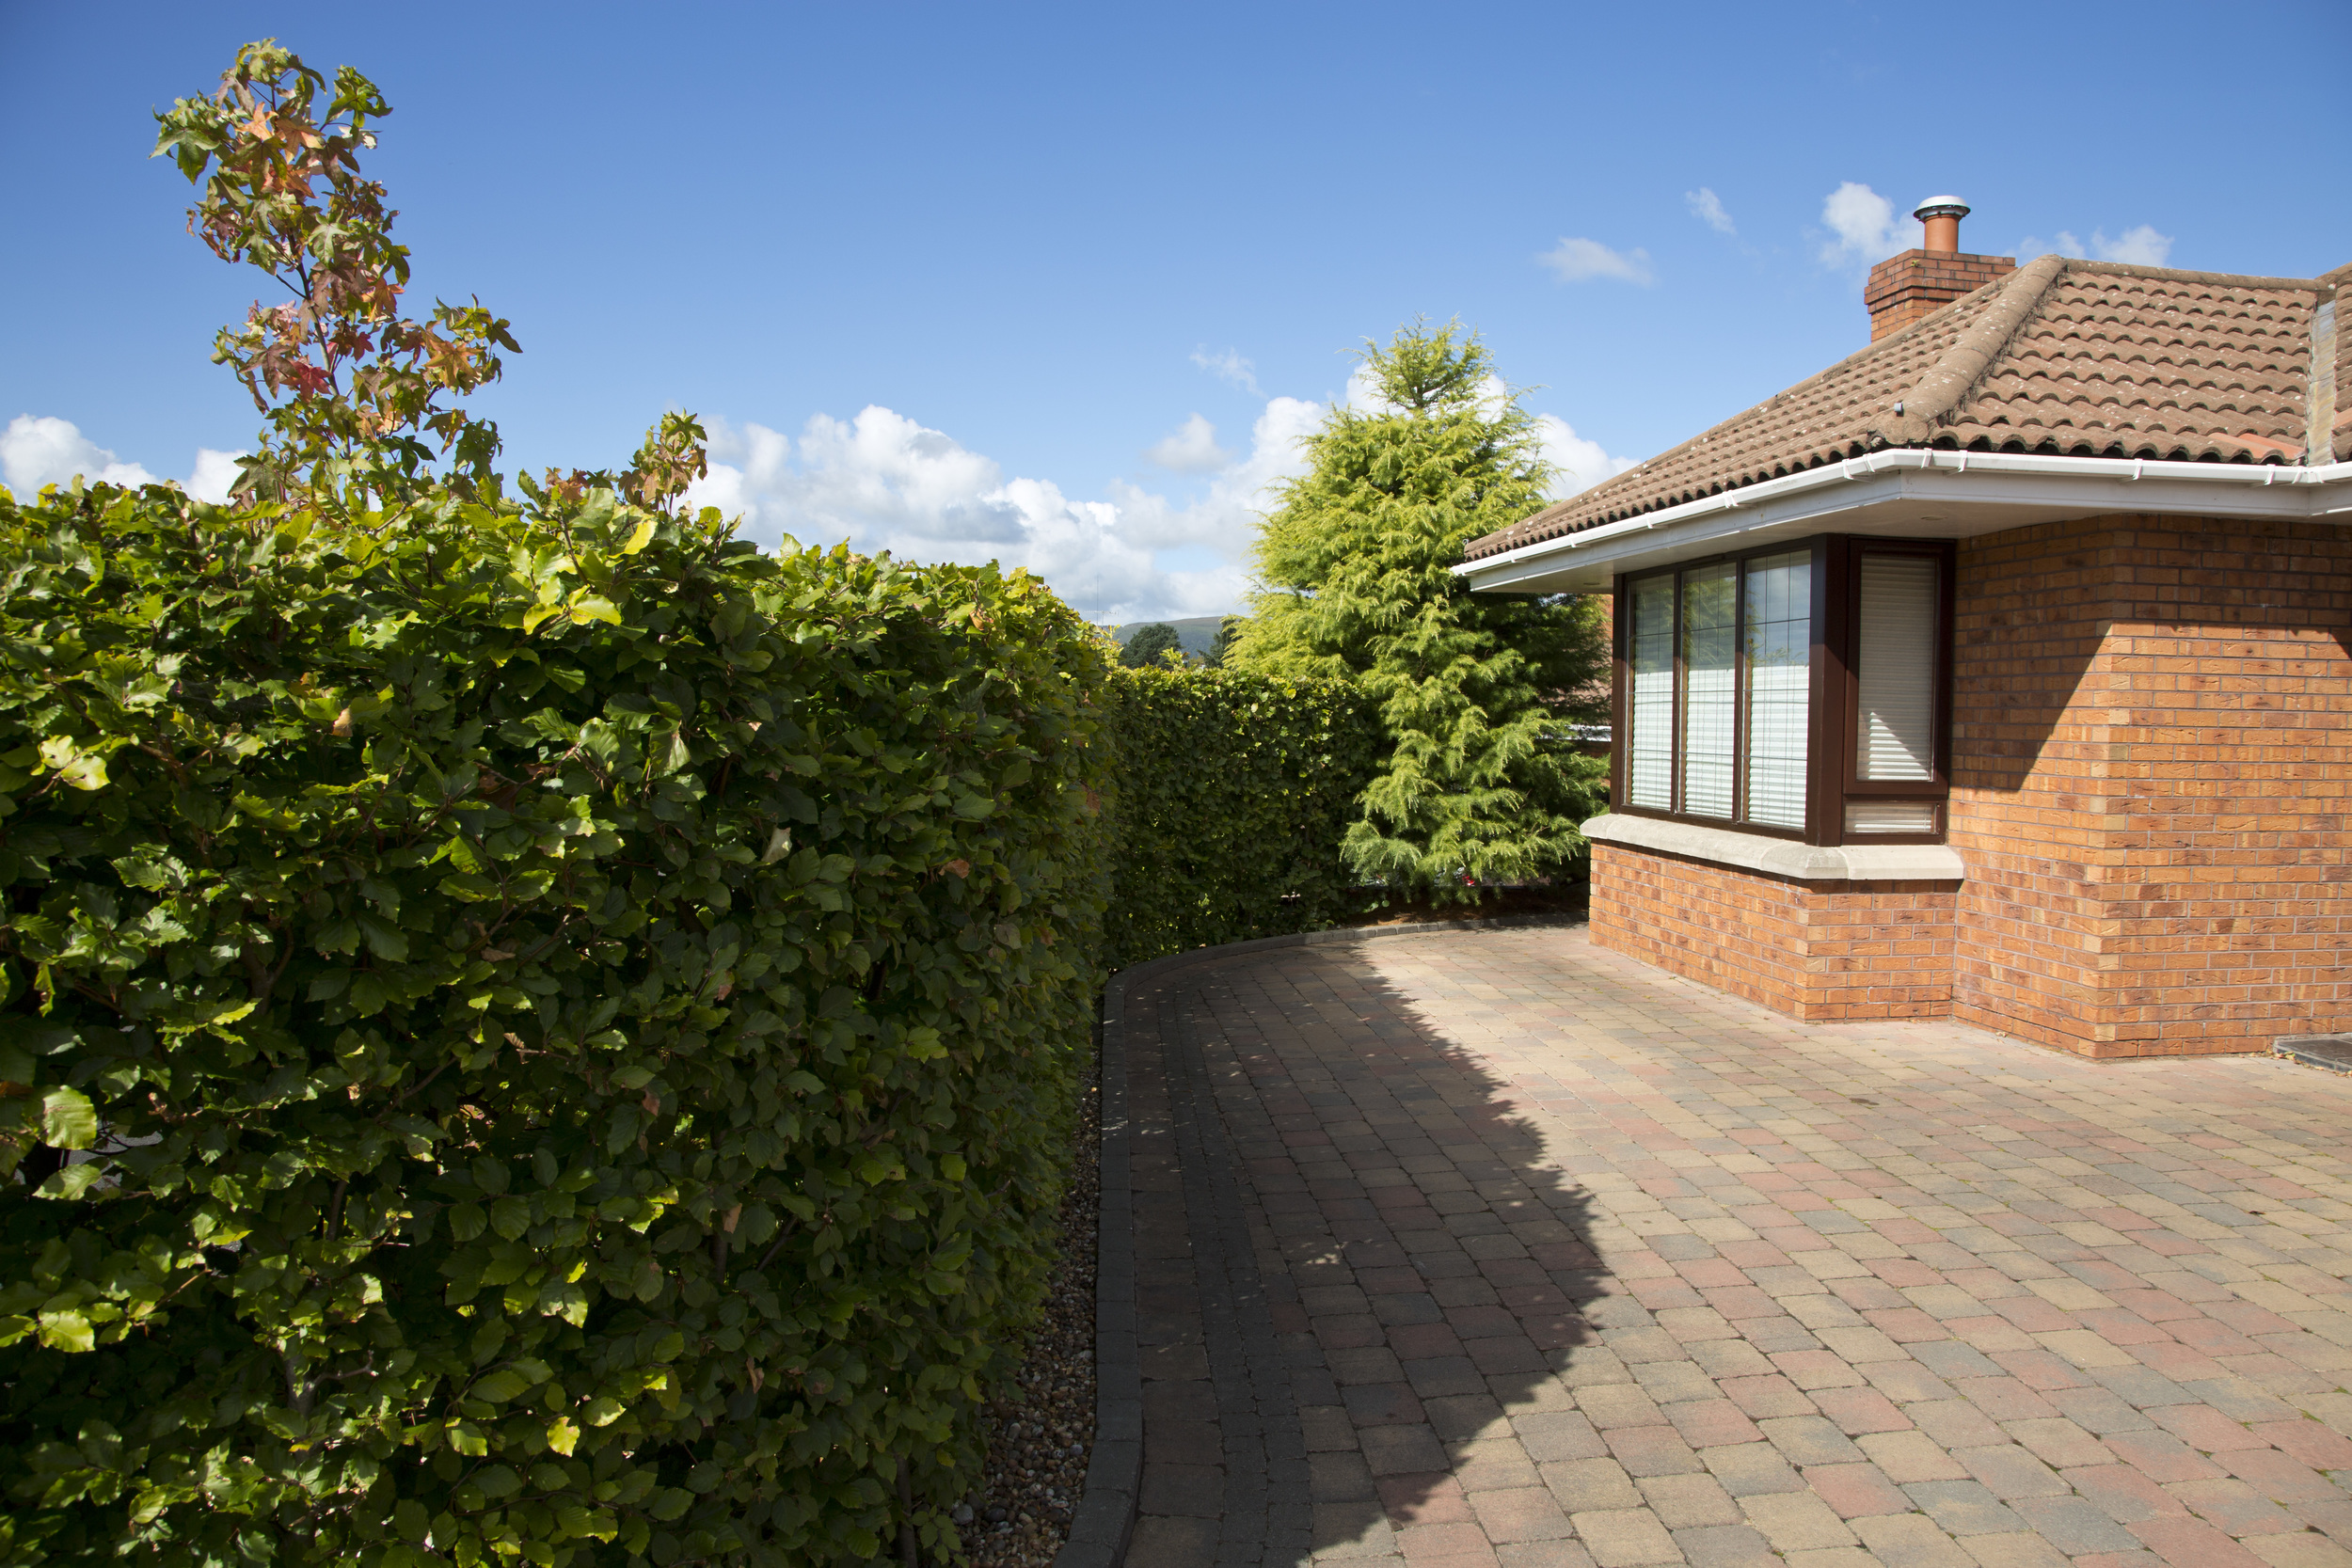 beech hedge and tobermore tegula paving belfast